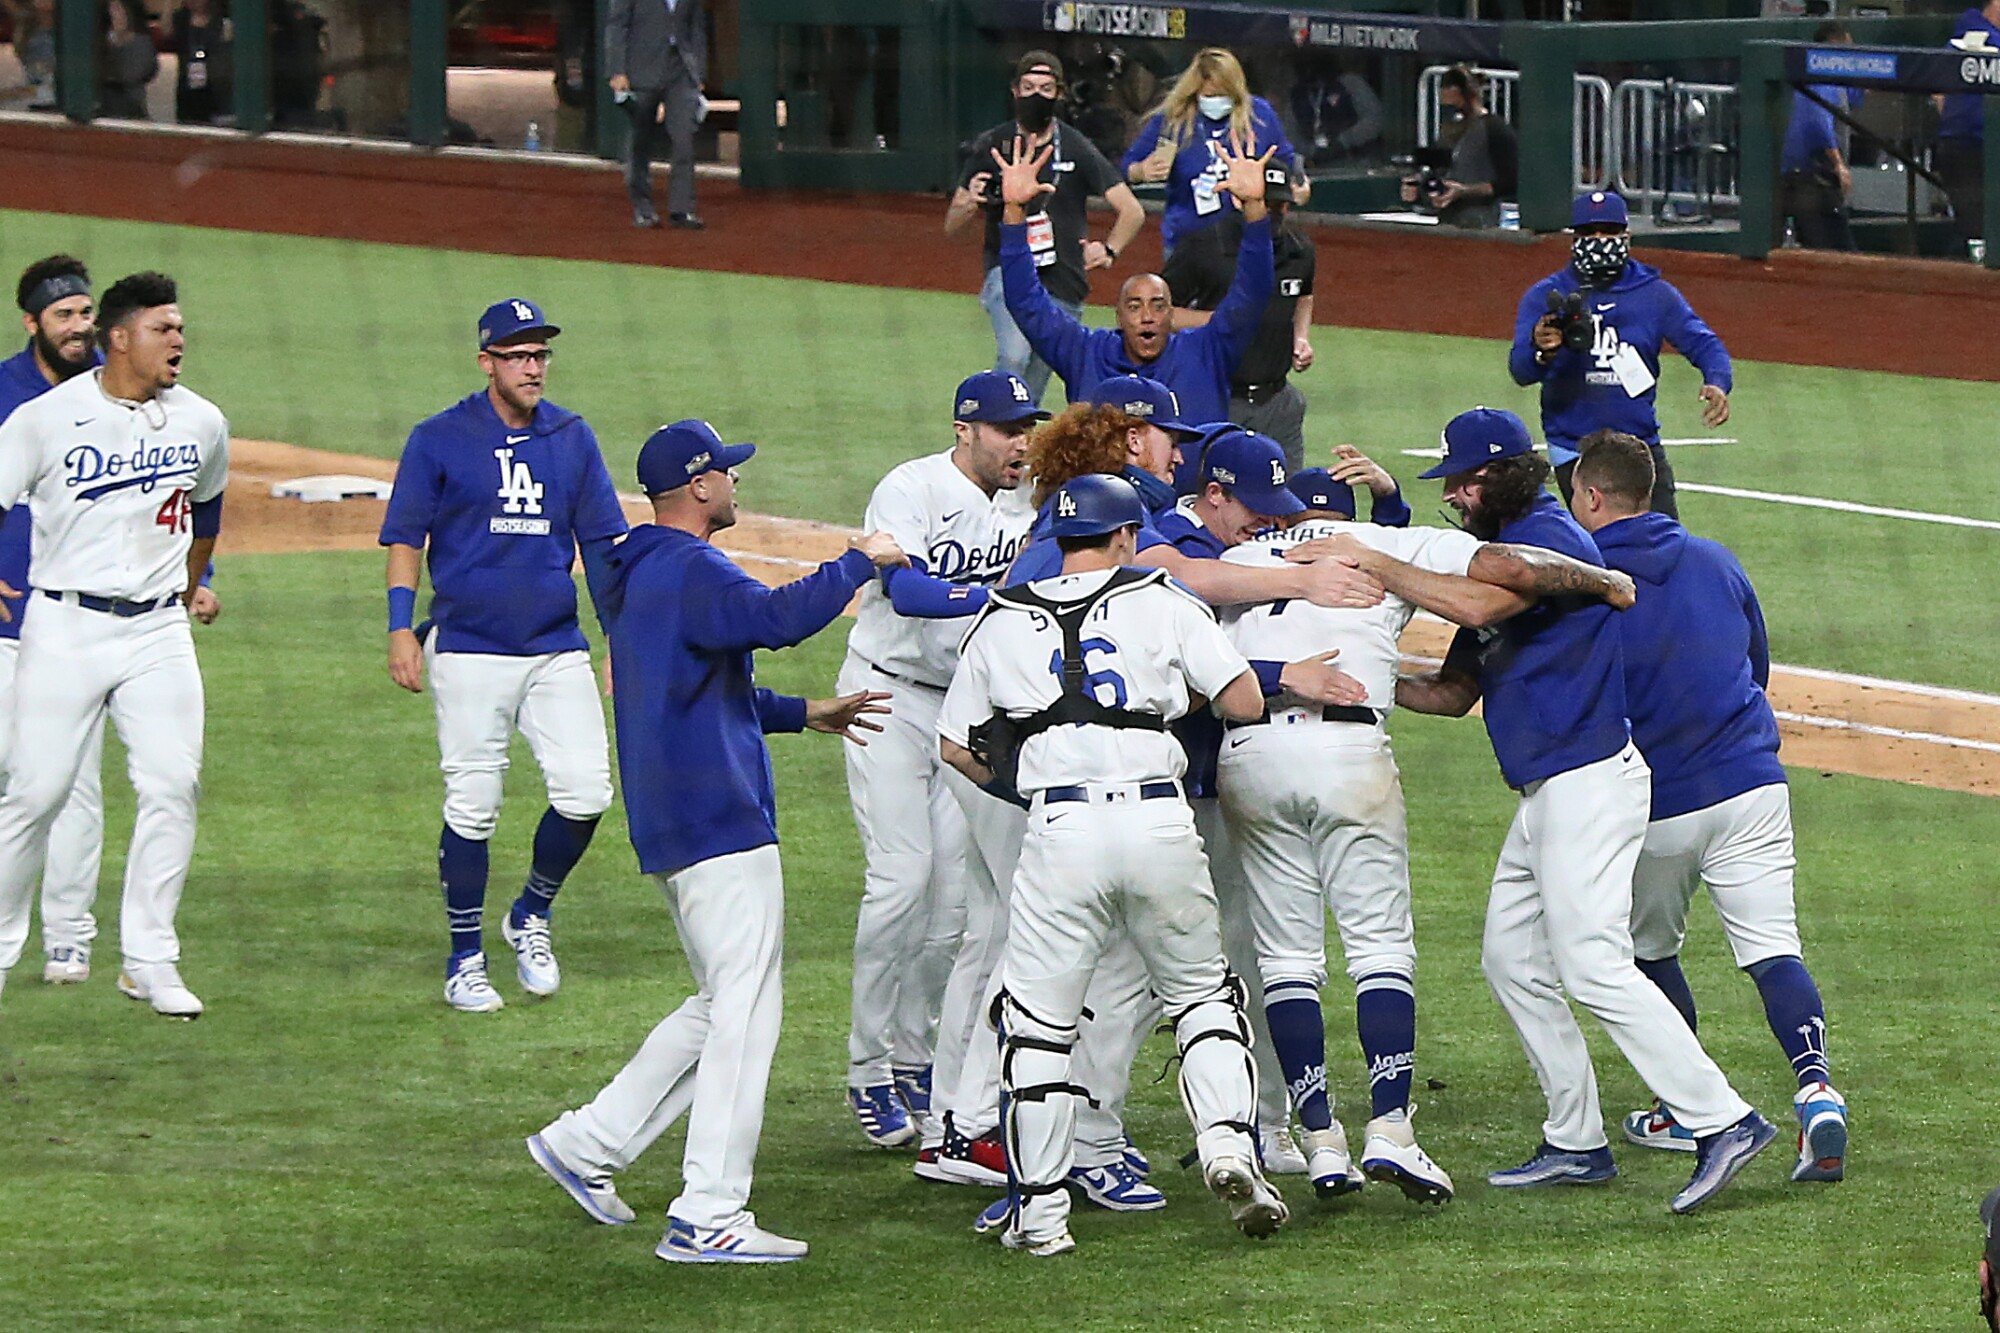 The Dodgers run onto the field, embracing and slapping backs.